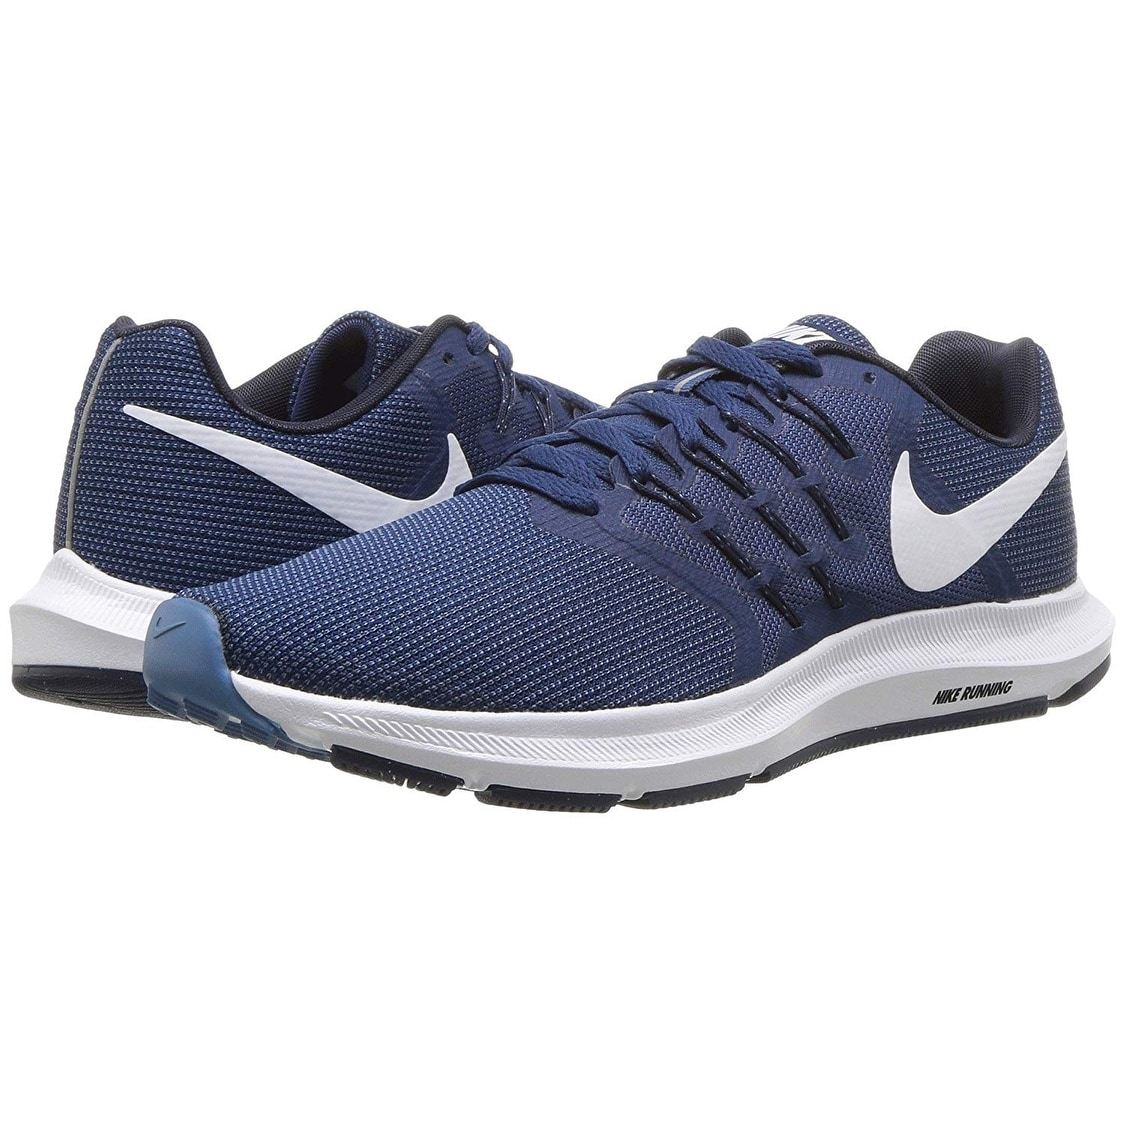 b2a7e7bf4e675 Shop Nike Wmns Run Swift Womens 909006-401 Size 7.5 - Free Shipping Today -  Overstock - 24302579